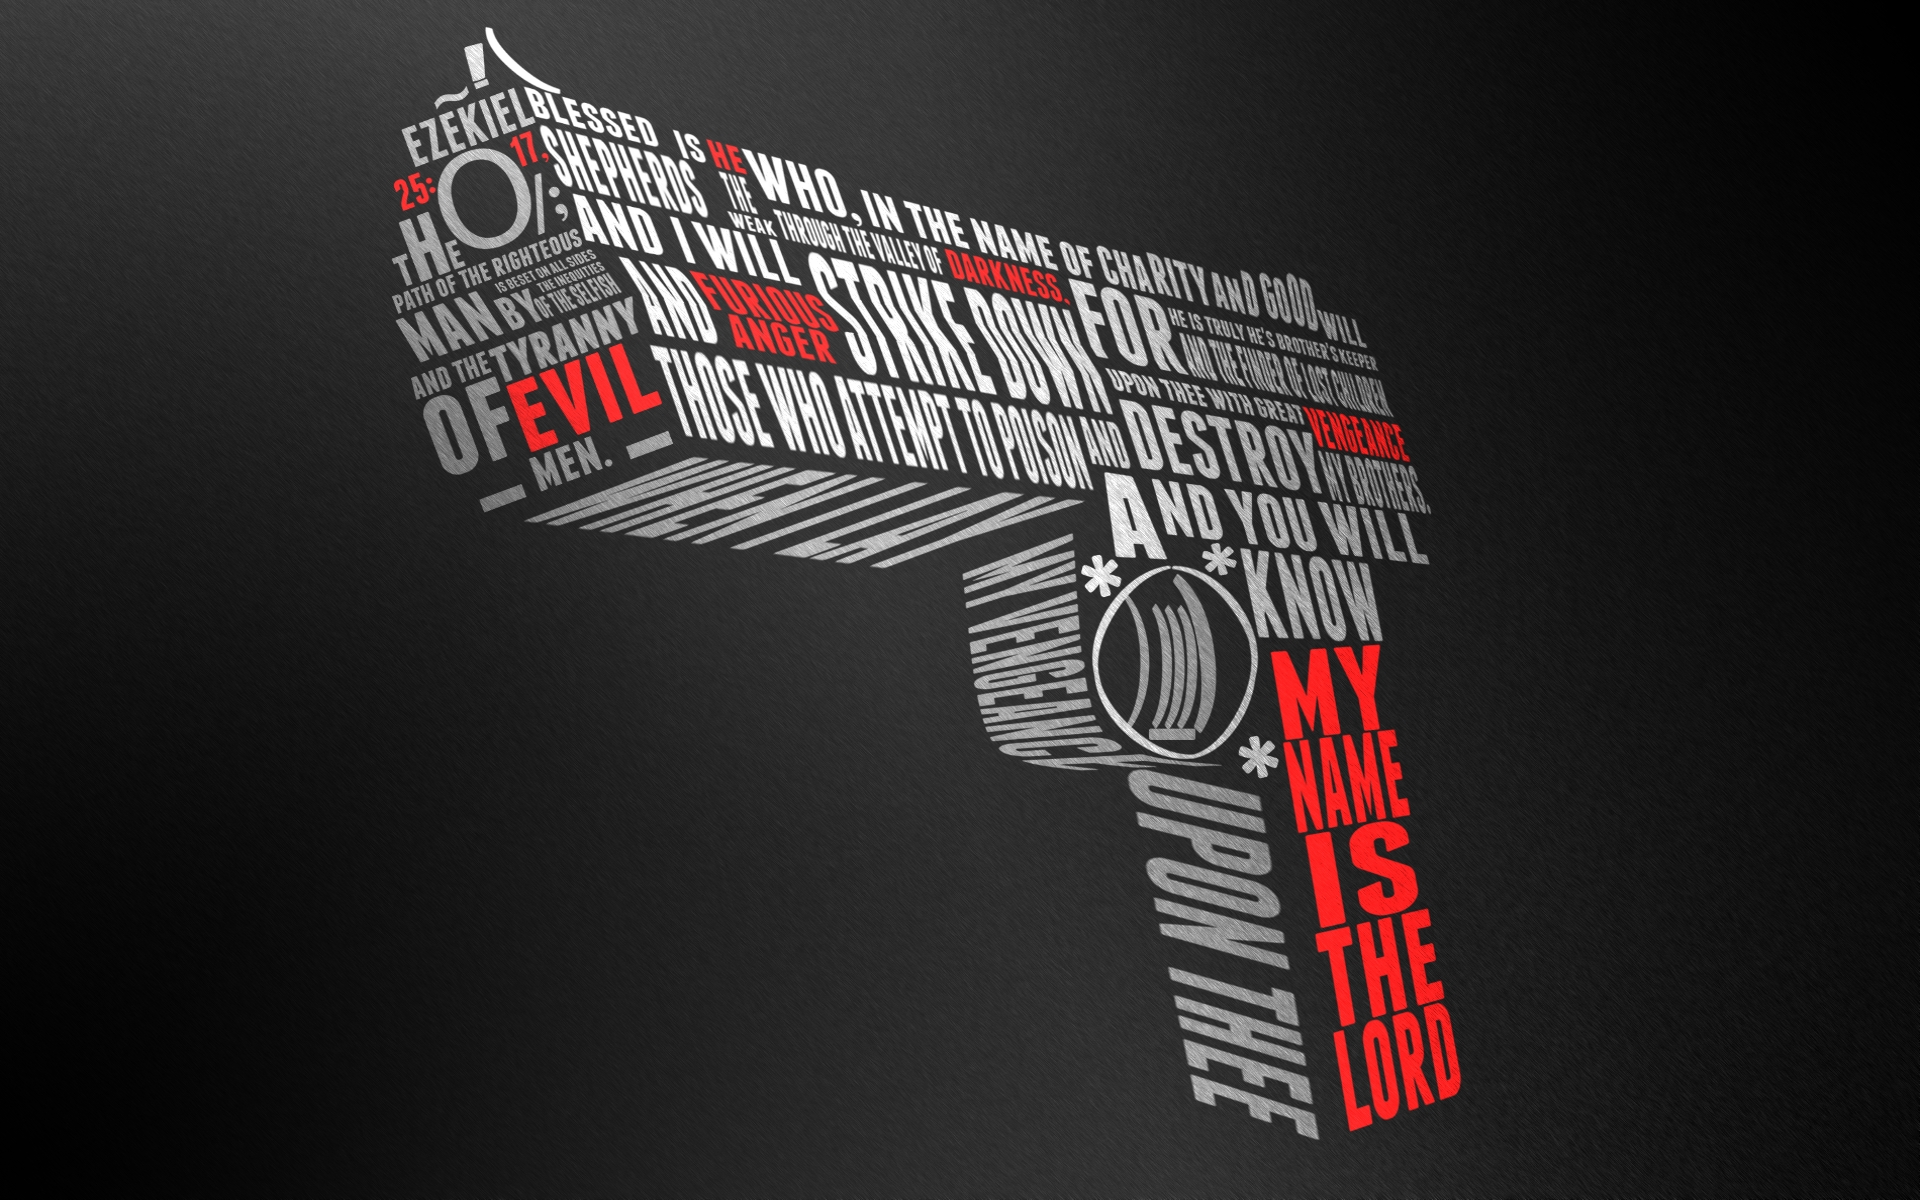 Cool Gun Drawing Youtube Ezekiel Fiction wallpapers HD   138965 1920x1200